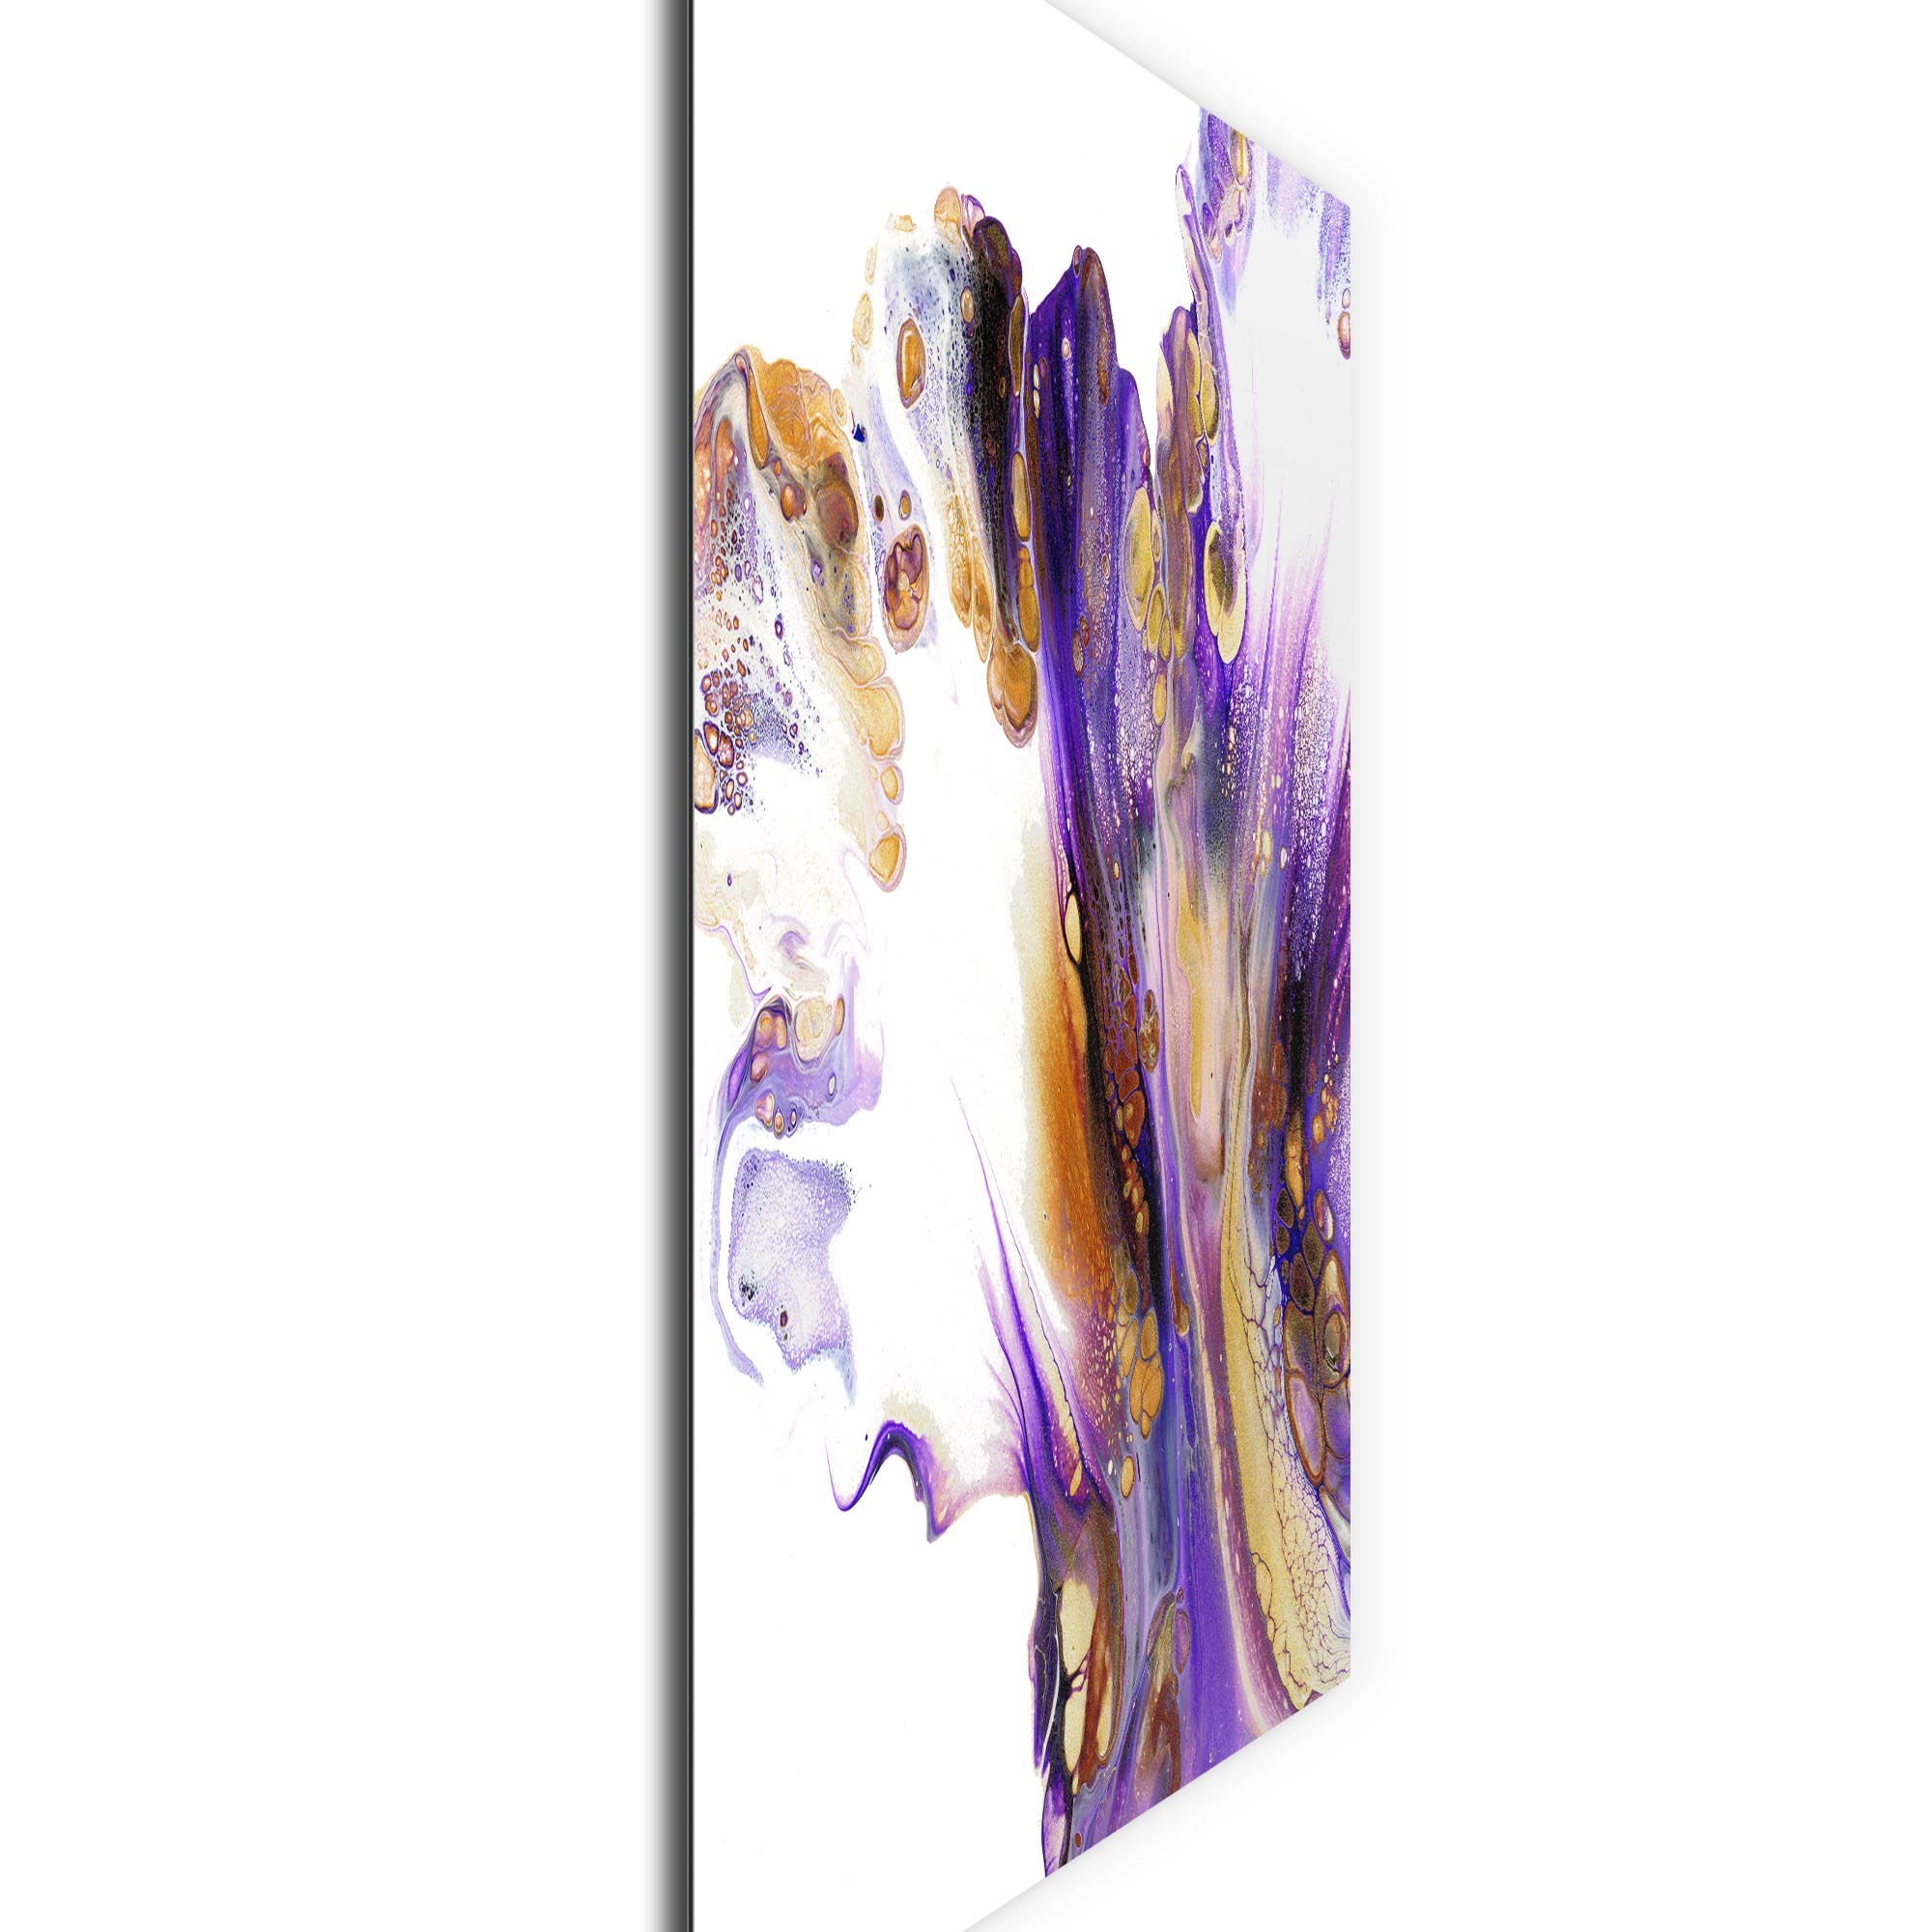 Feathered by Elana Reiter - Abstract Wall Art, Modern Home Decor (36in x 36in) - Image 2